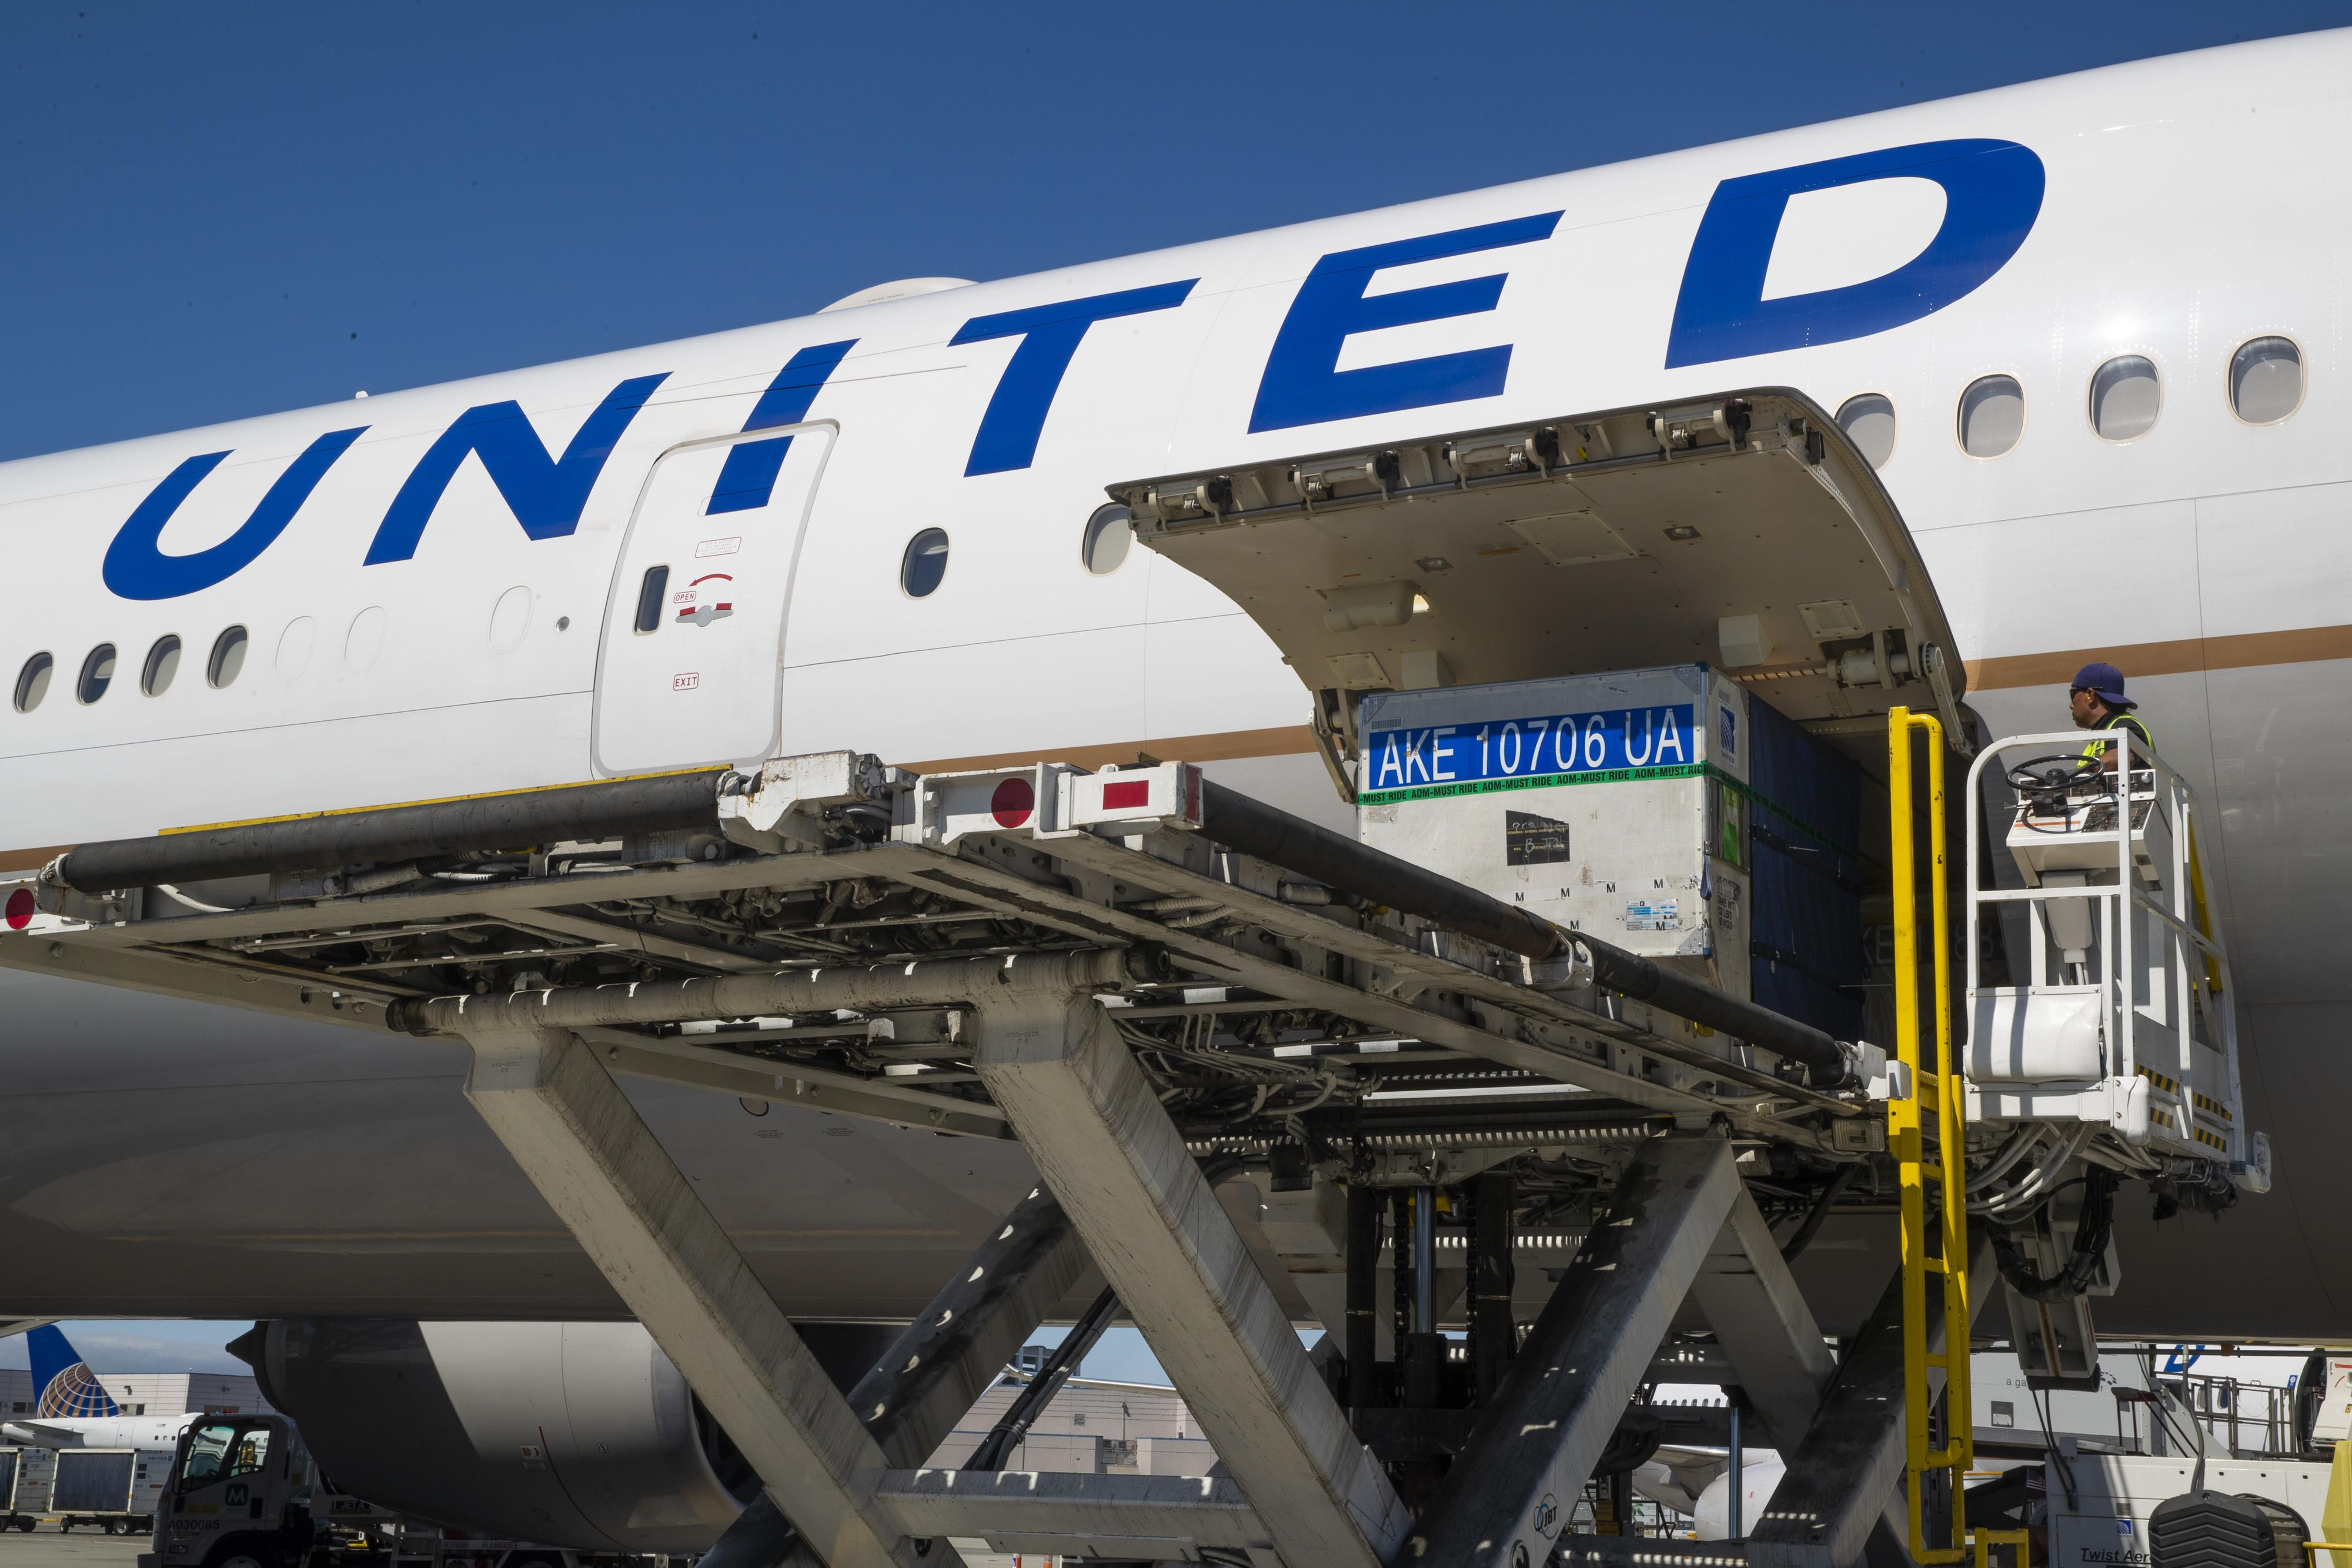 united-Airlines-sfo-12